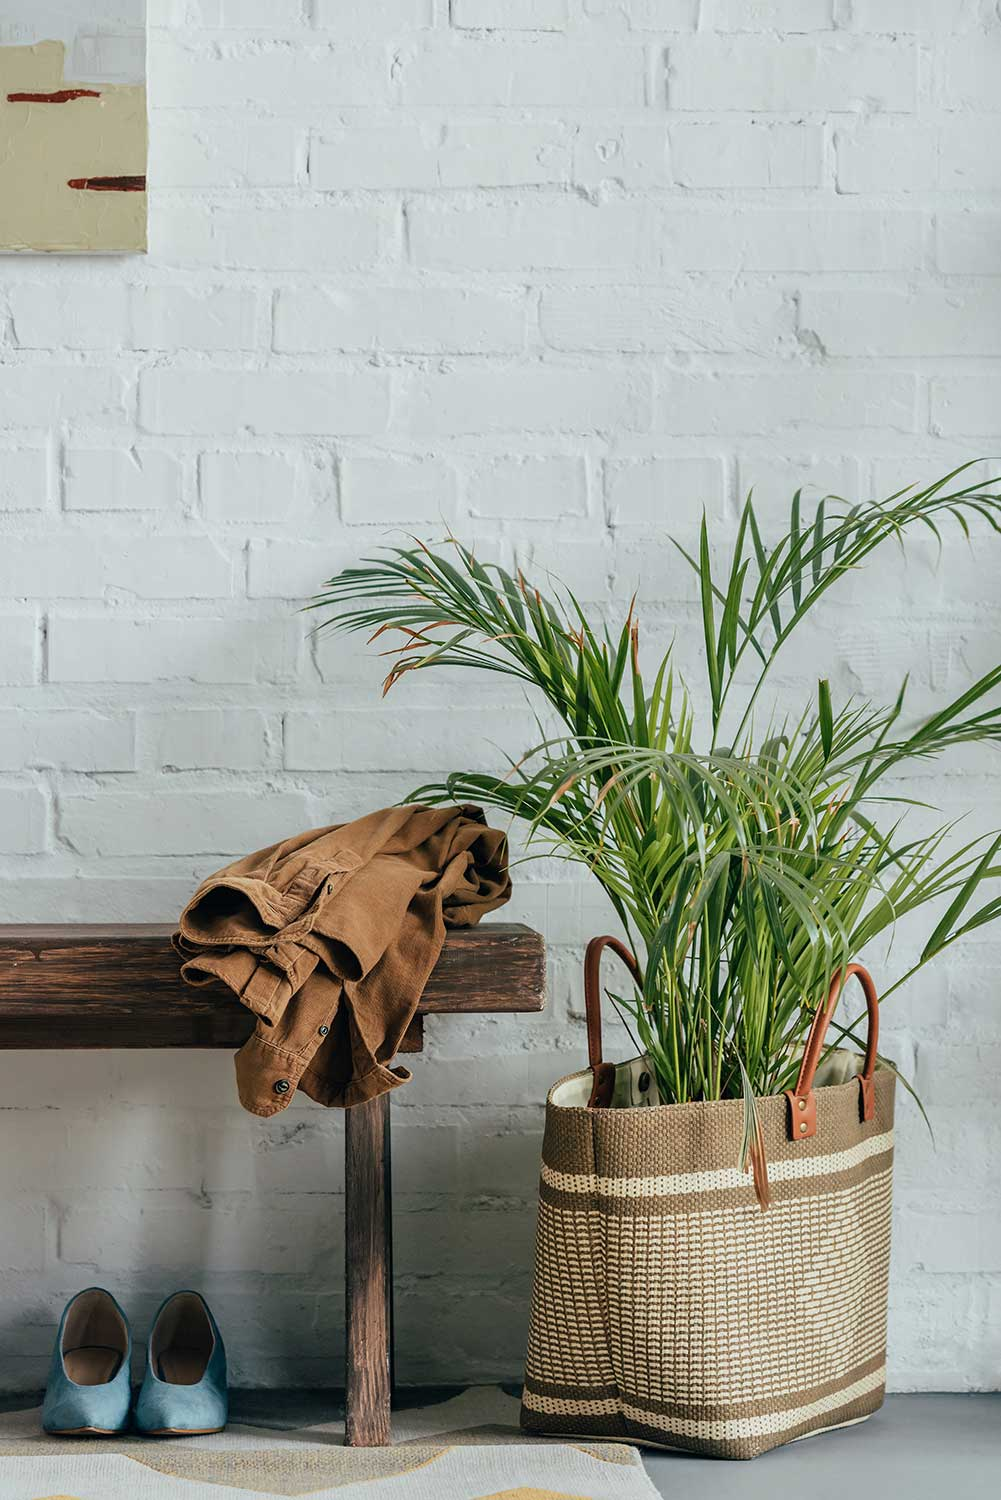 Potted palm tree in basket on floor with wooden bench in corridor at home